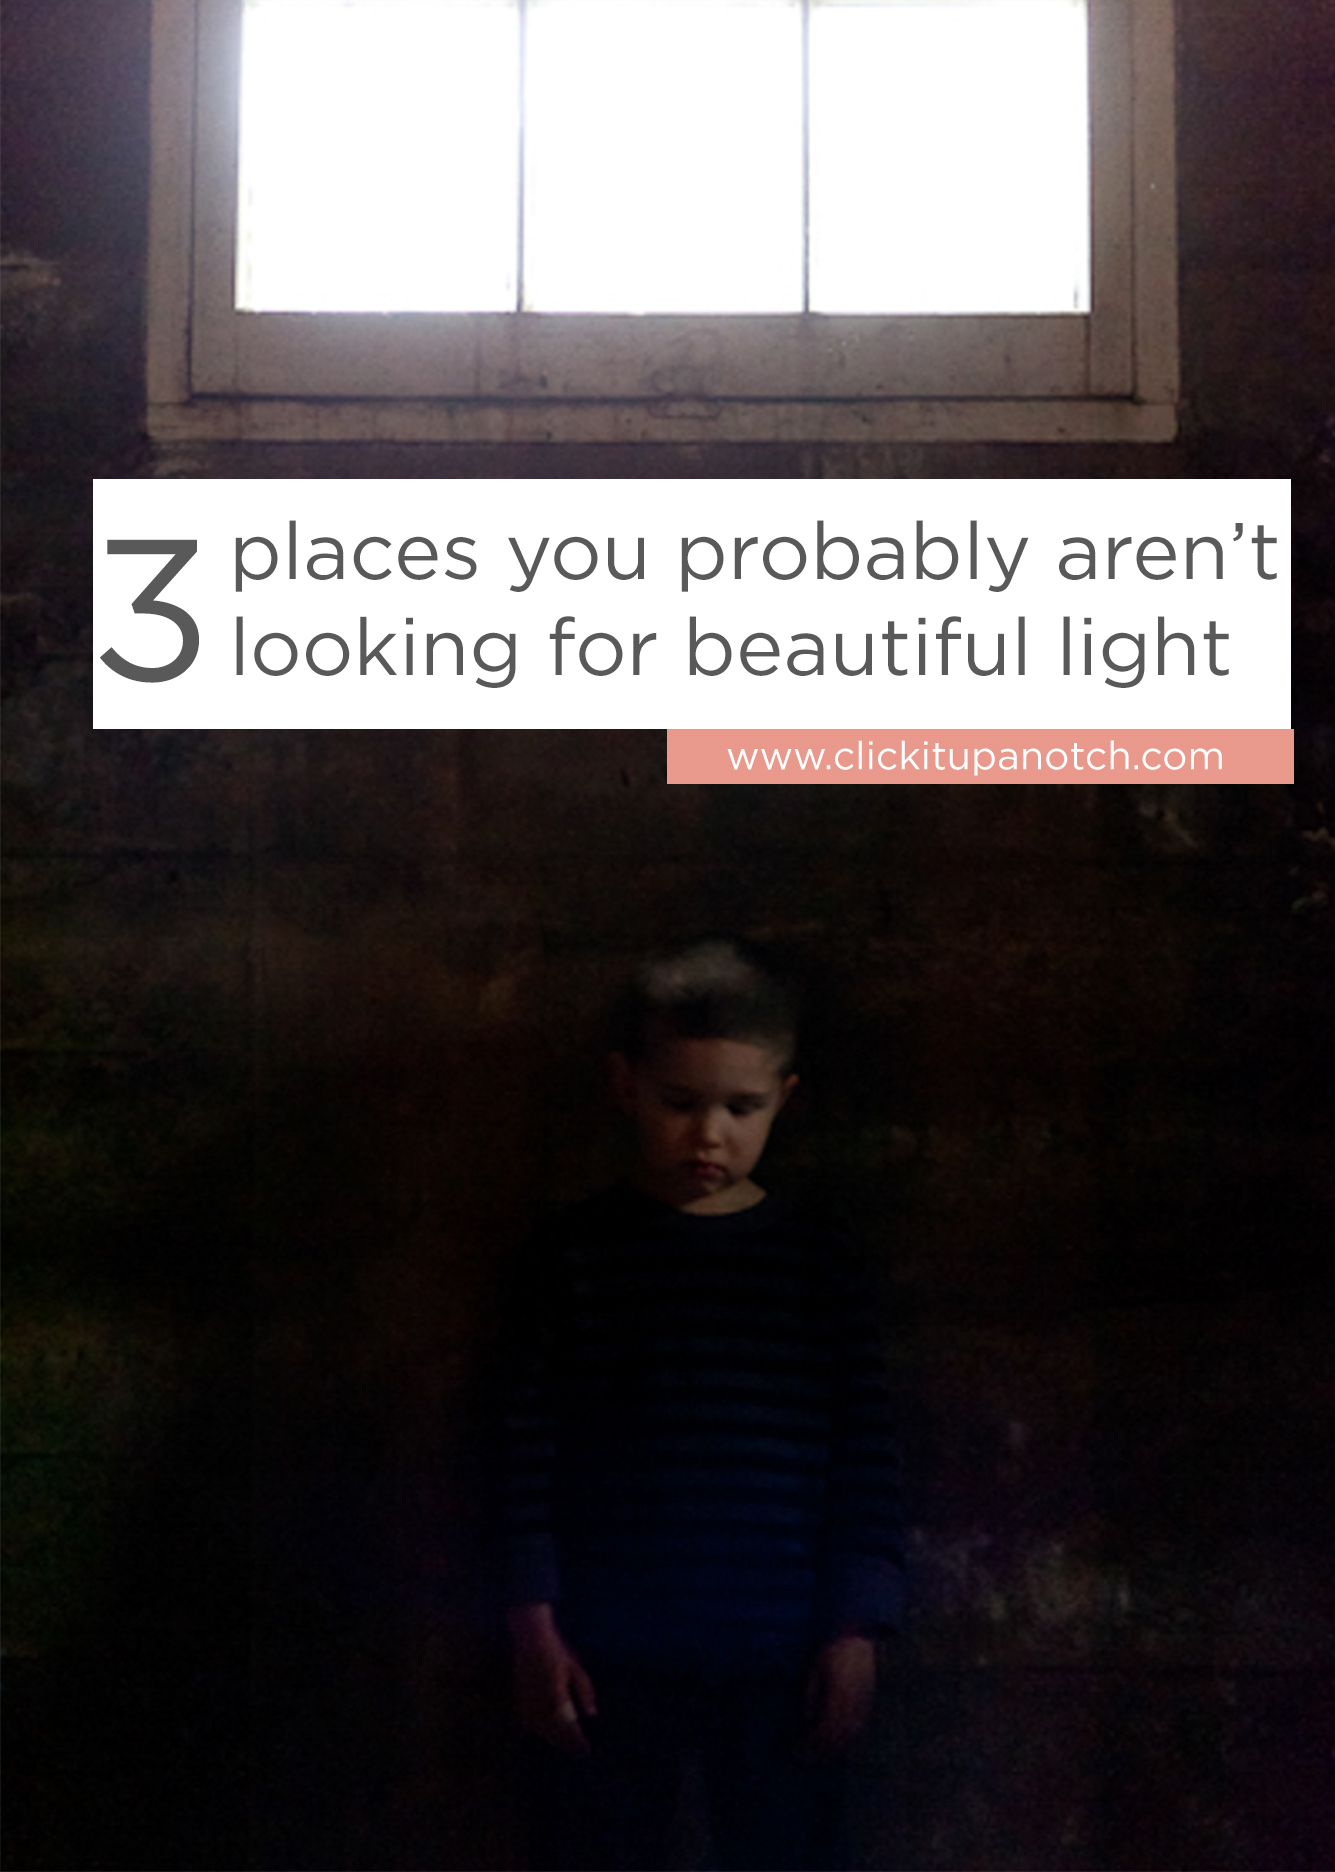 3 places you probably aren't looking for beautiful light